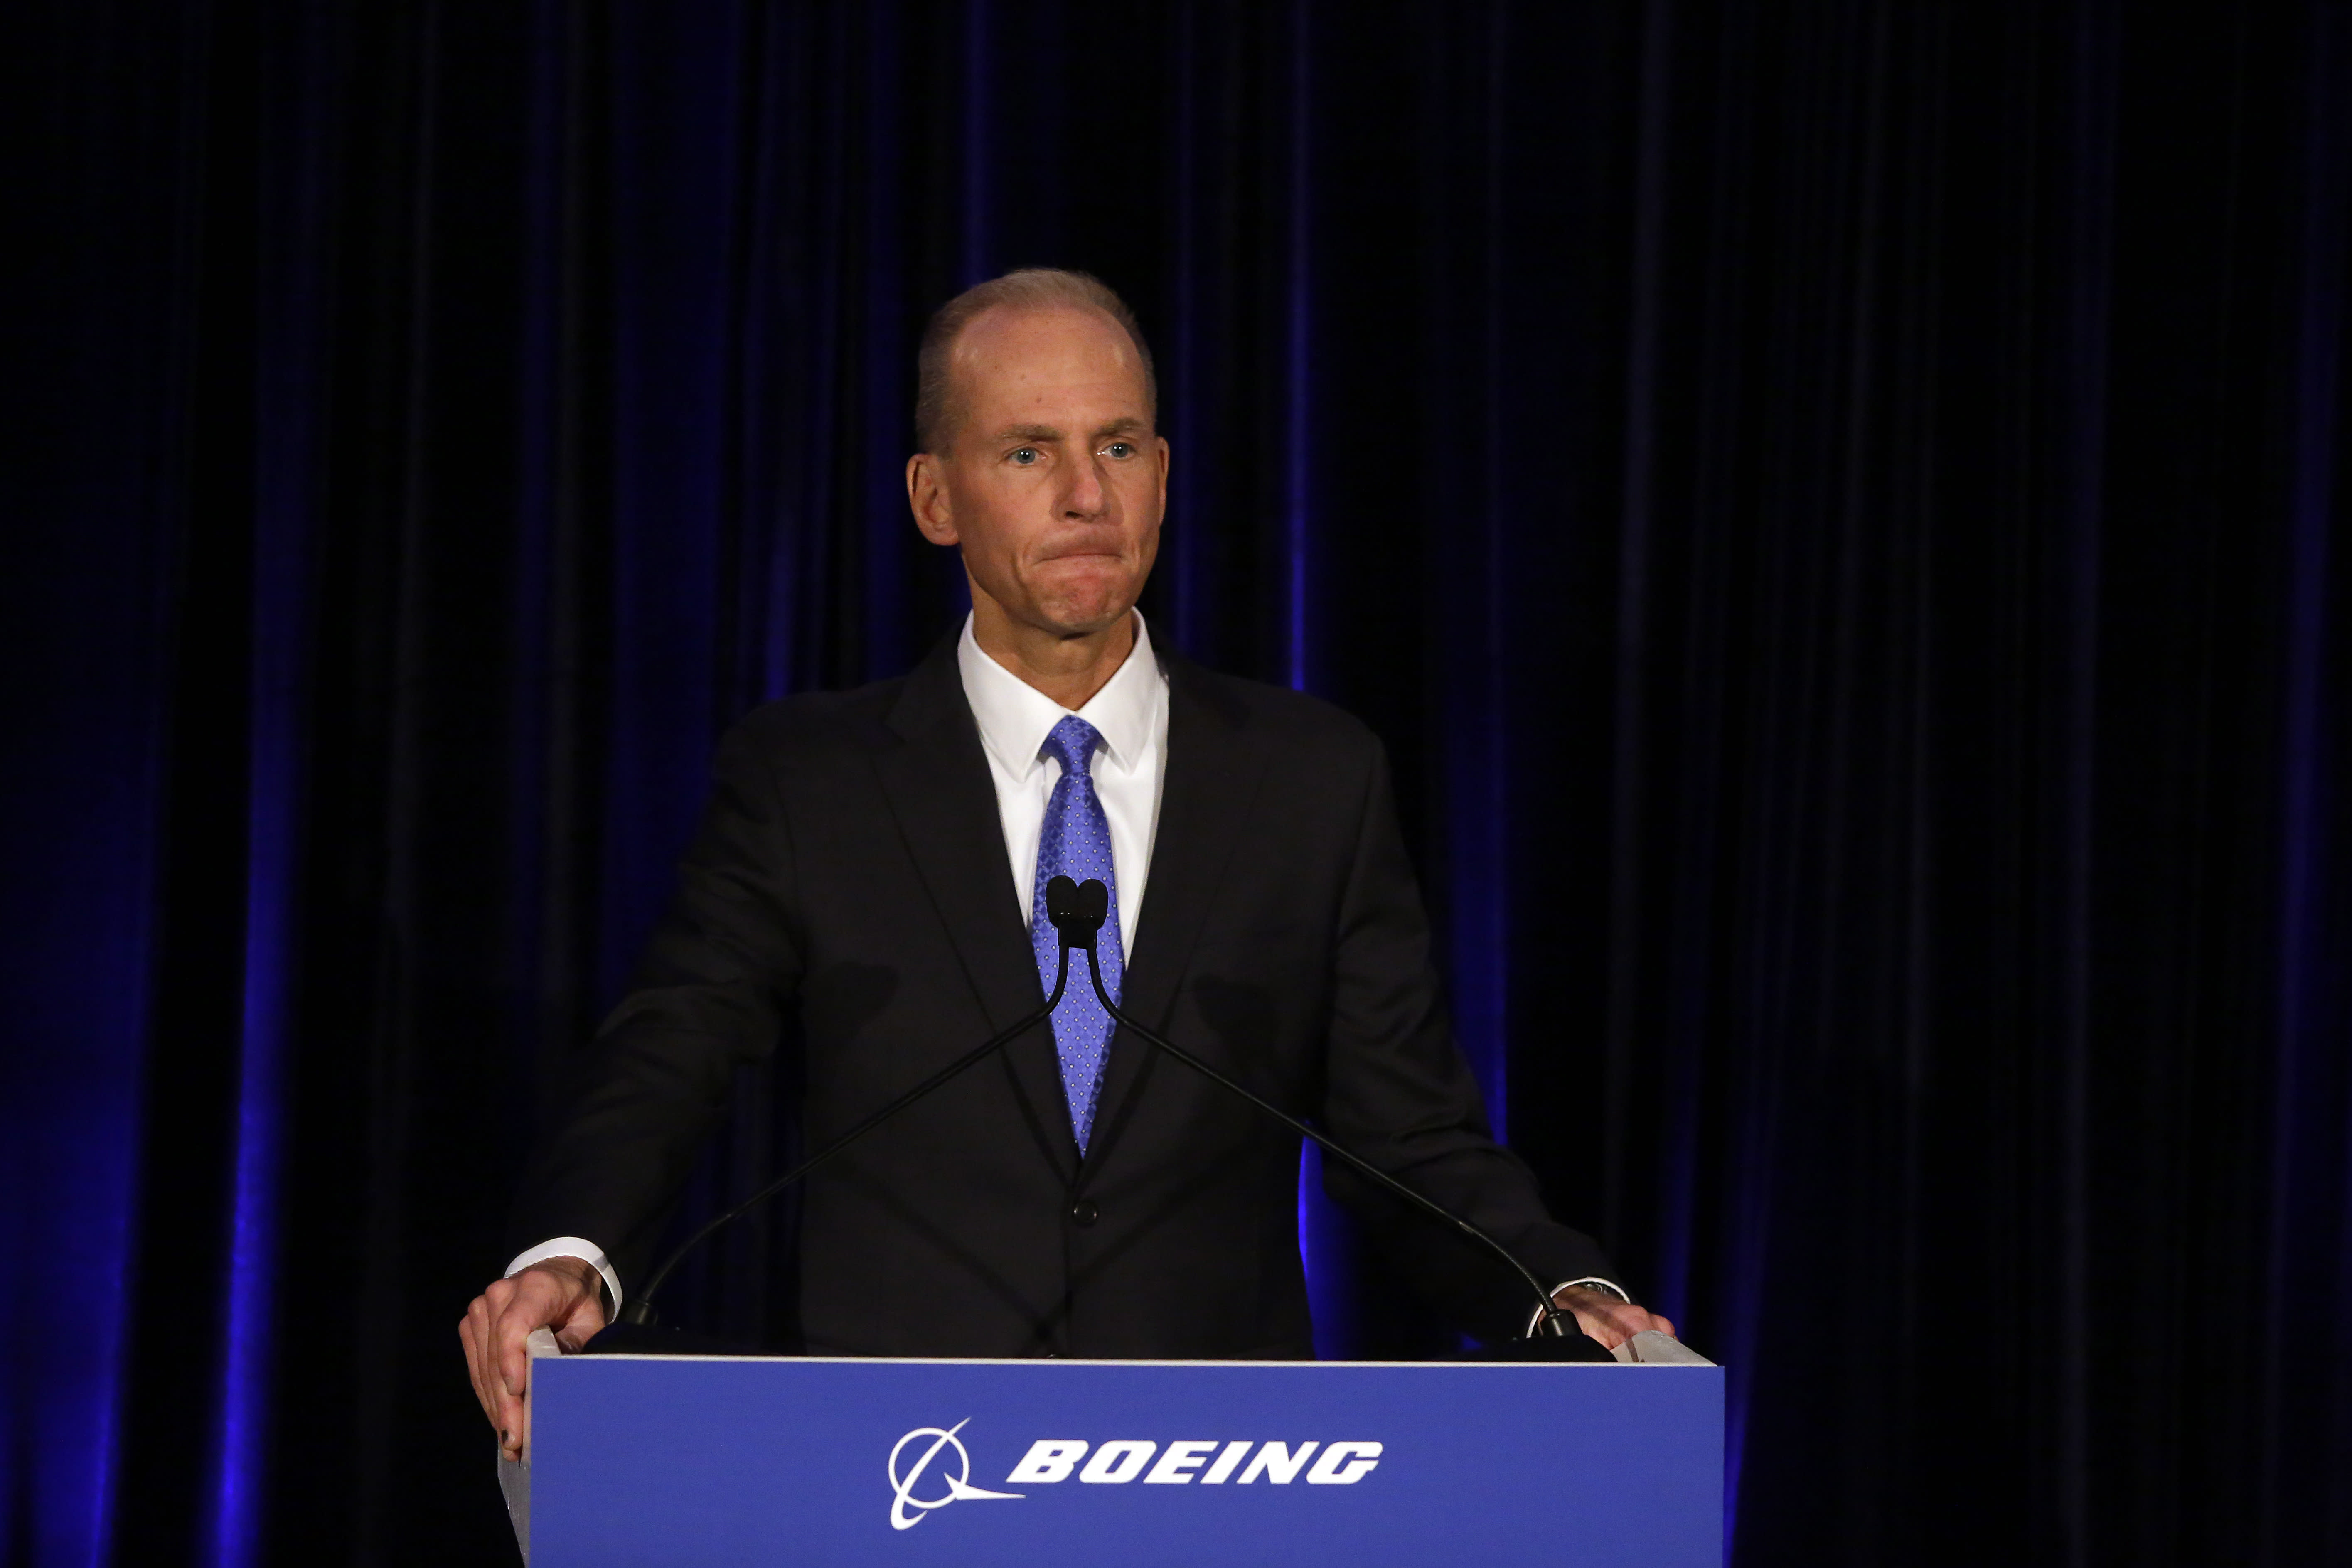 Congress hauls officials to Capitol Hill for 3 hearings on Boeing 737 Max crashes — but not the Boeing CEO